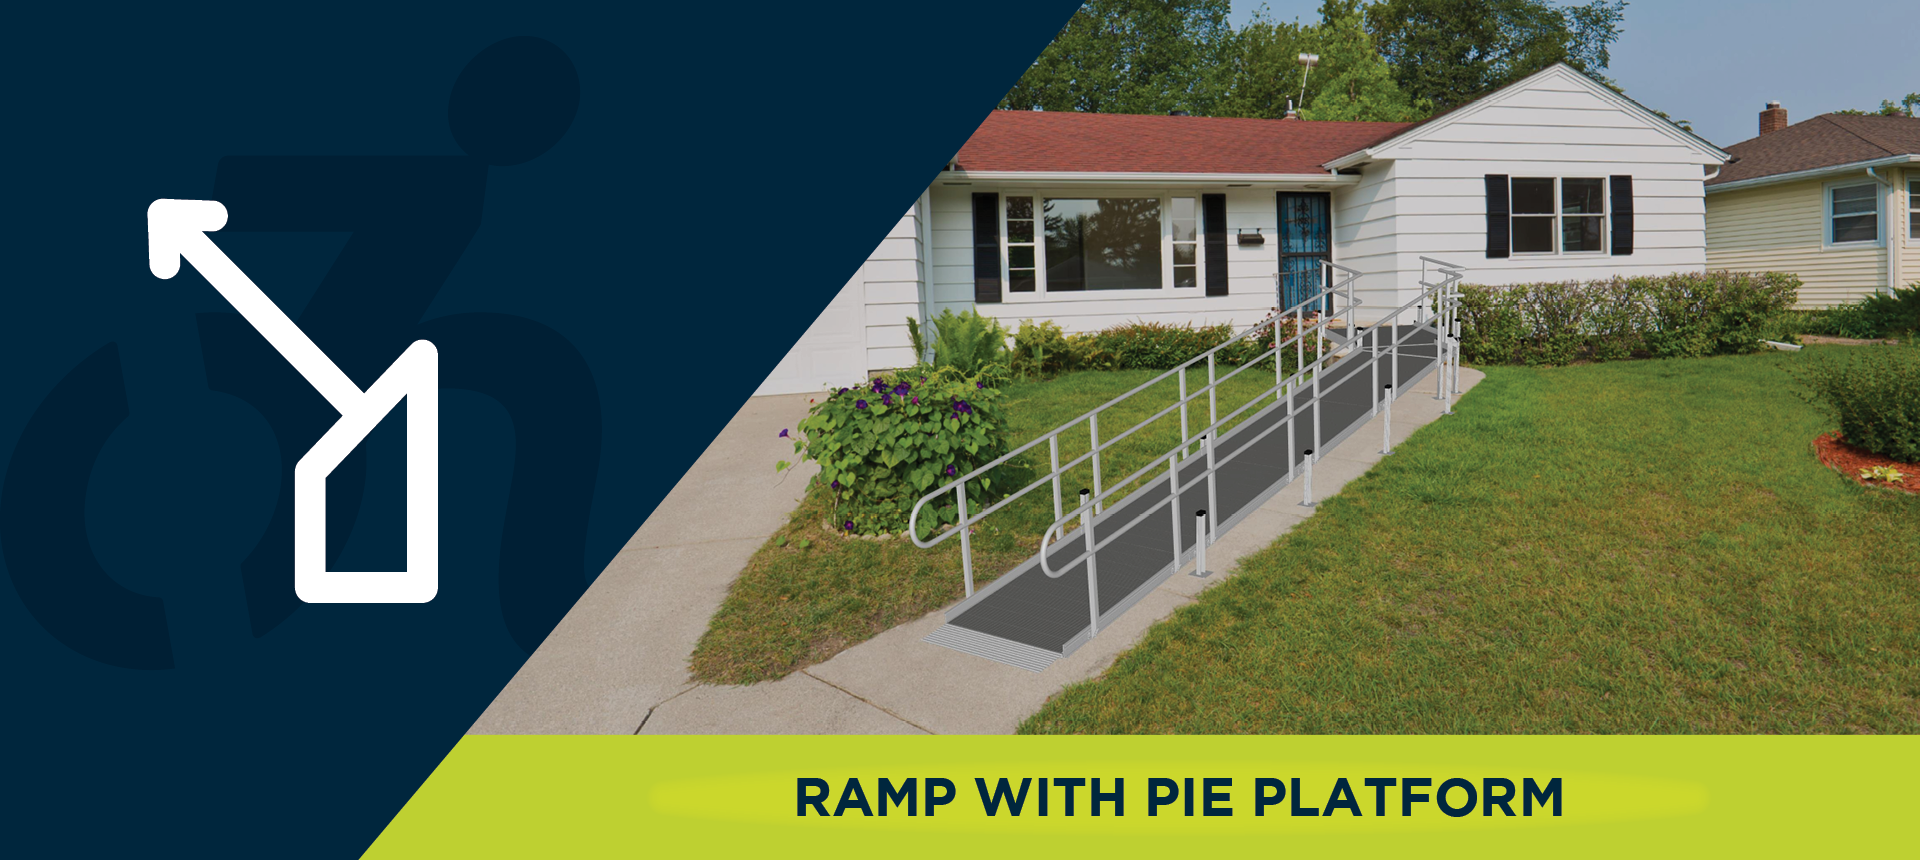 Ramp with a pie platform